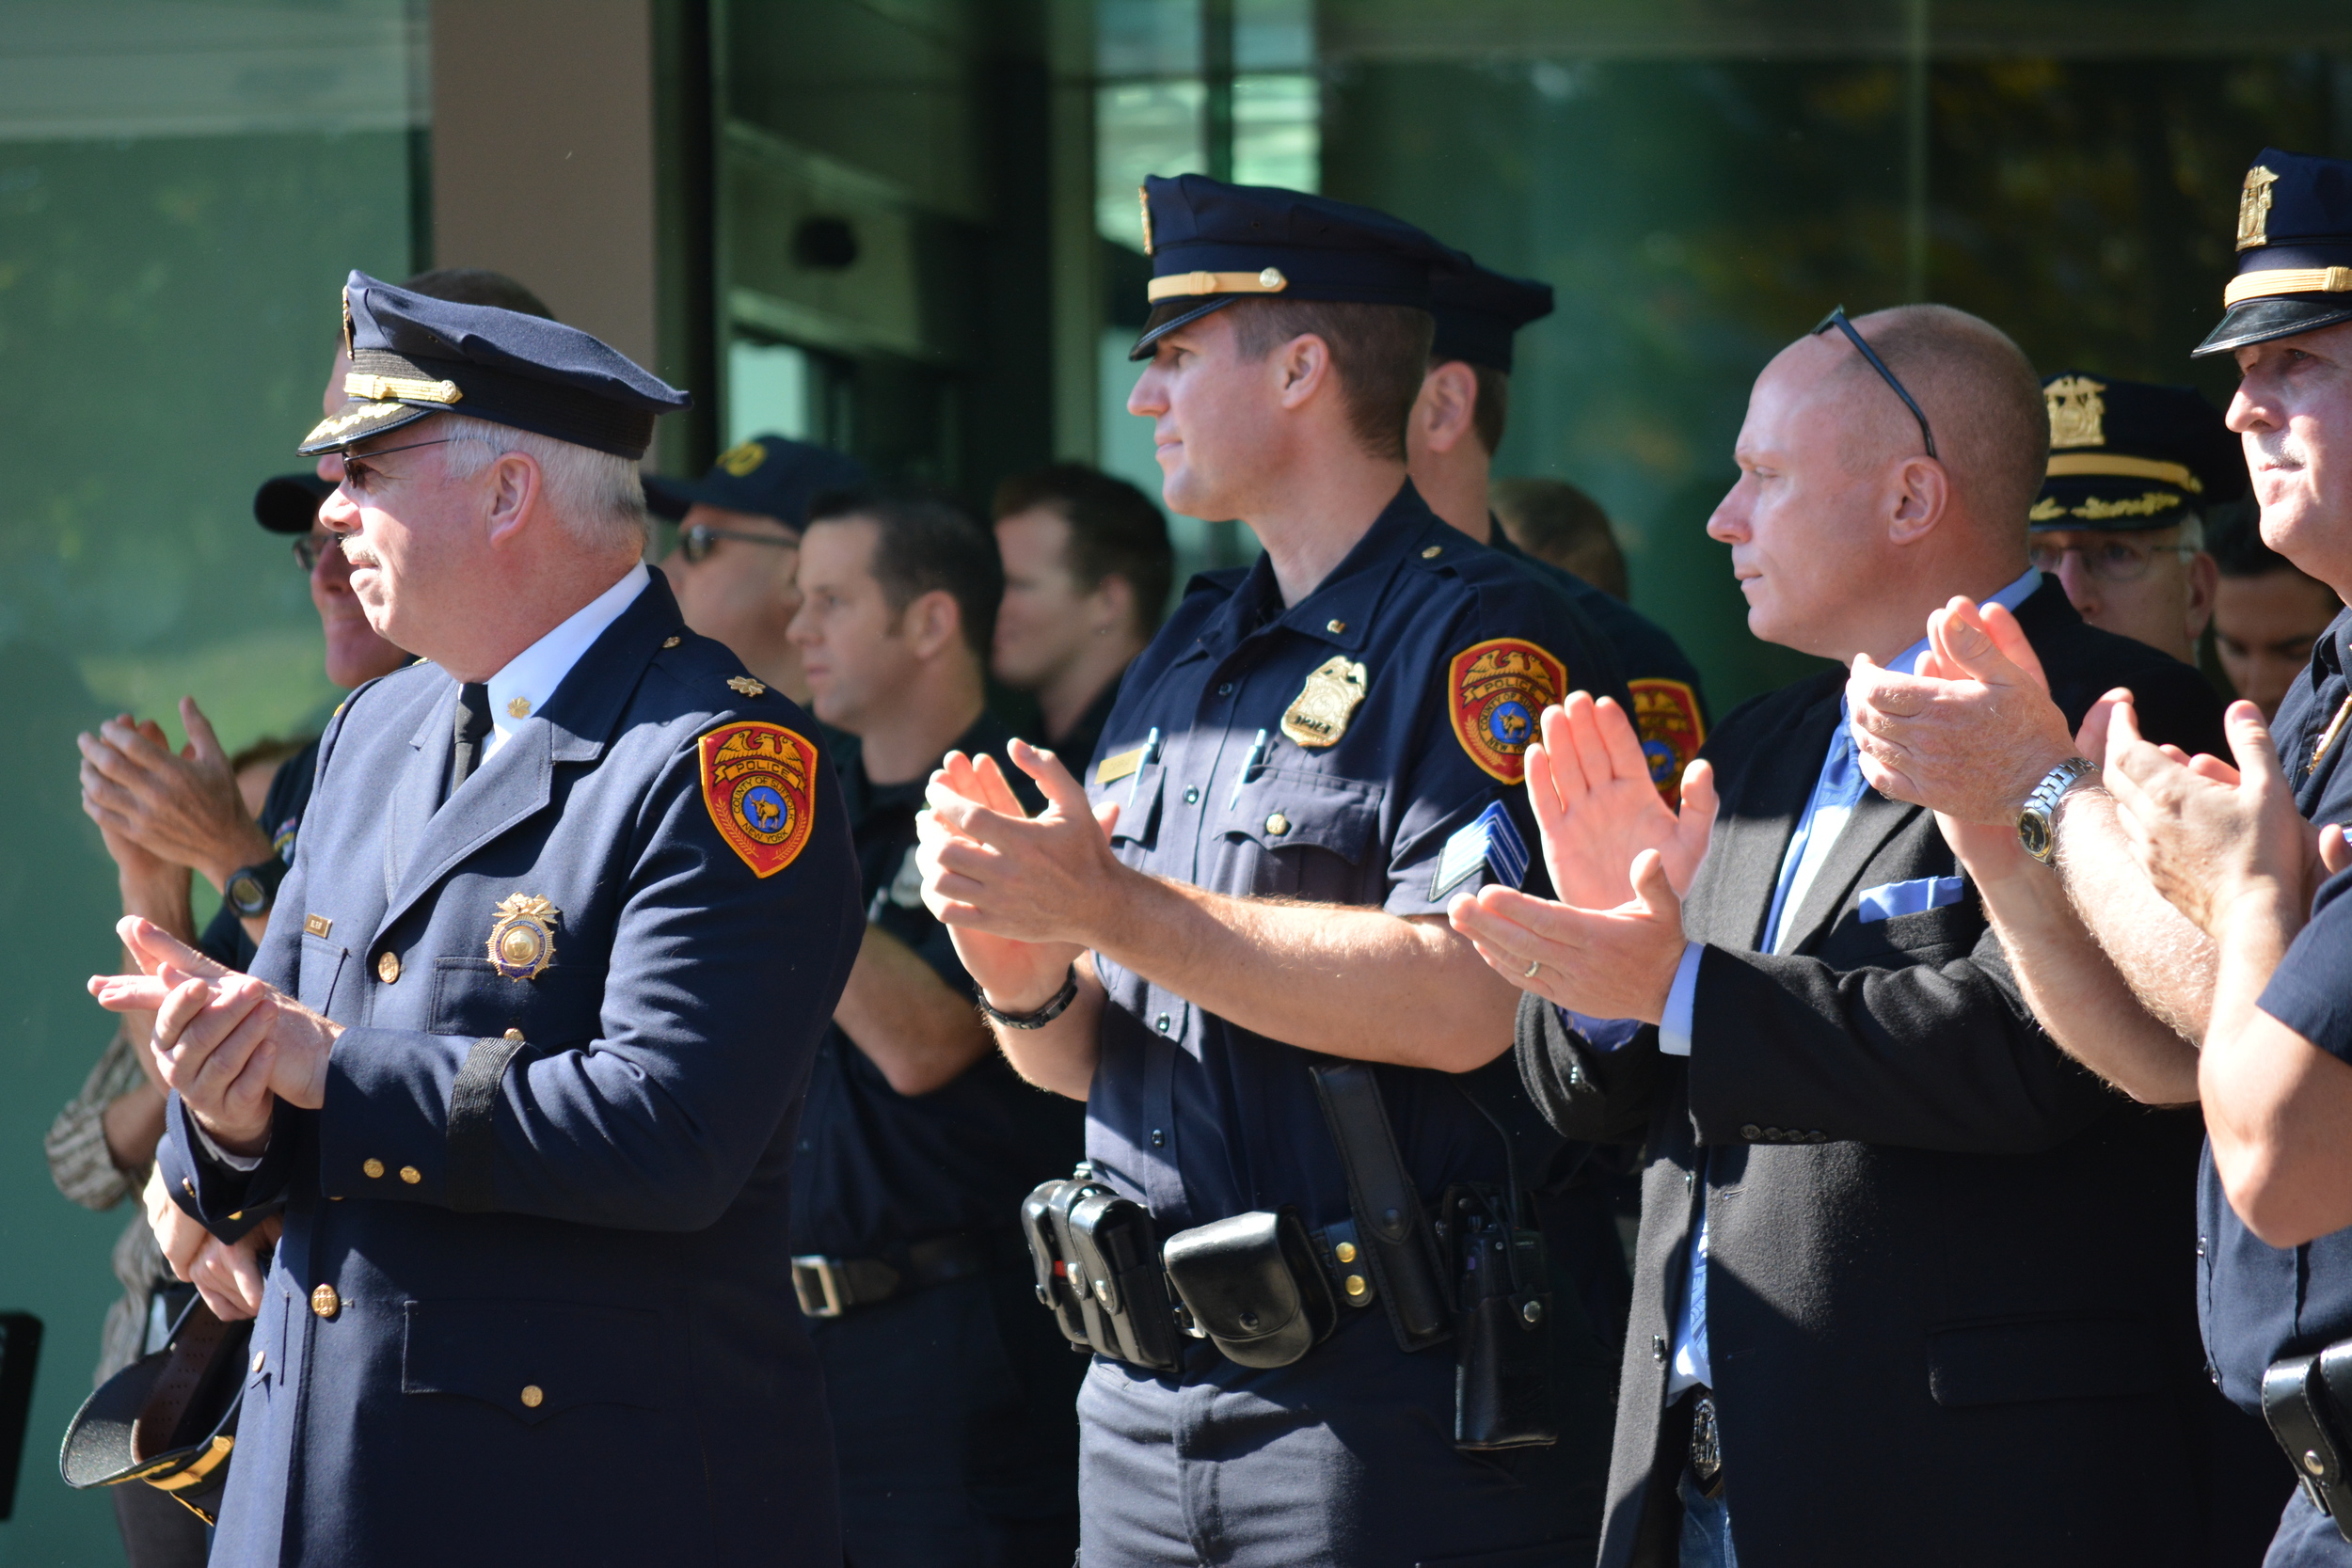 Suffolk County police officers give fellow Officer Nicholas Guerrero a round of applause on Friday as he is released from Stony Brook University Hospital following a hit-and-run that left him critically injured on Sept. 22.